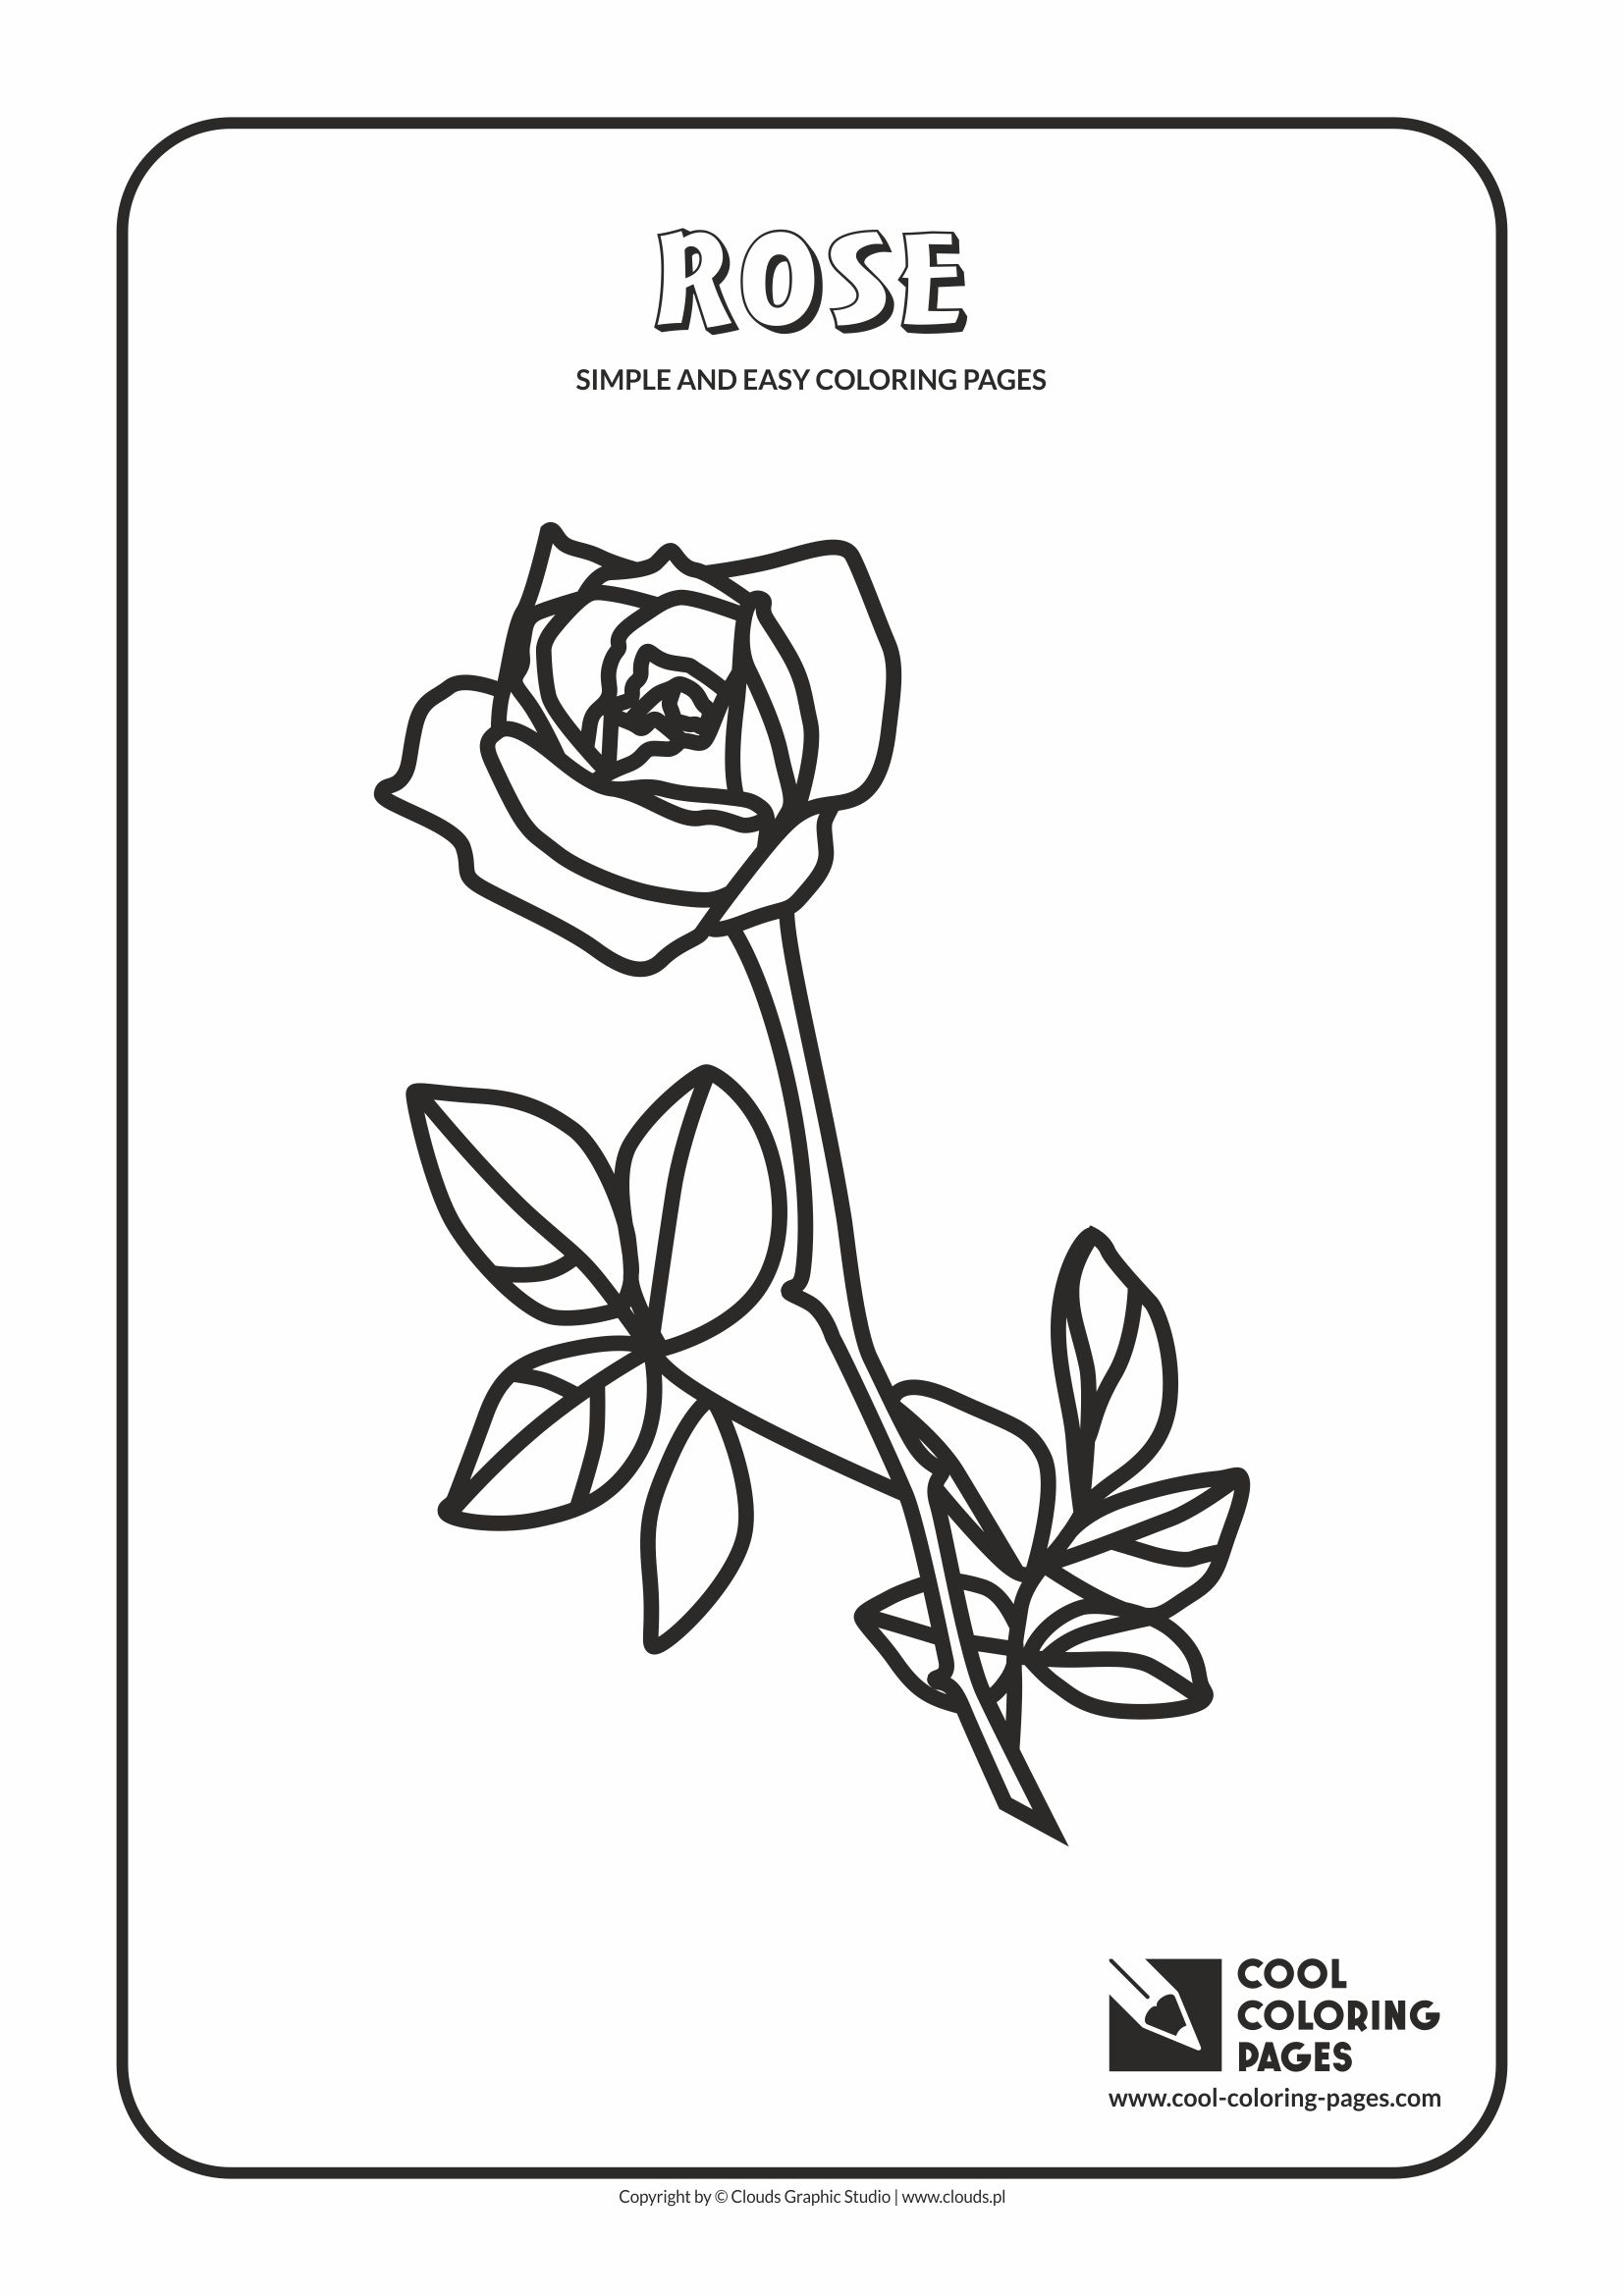 Cool coloring pages simple and easy coloring pages cool for Cool rose coloring pages